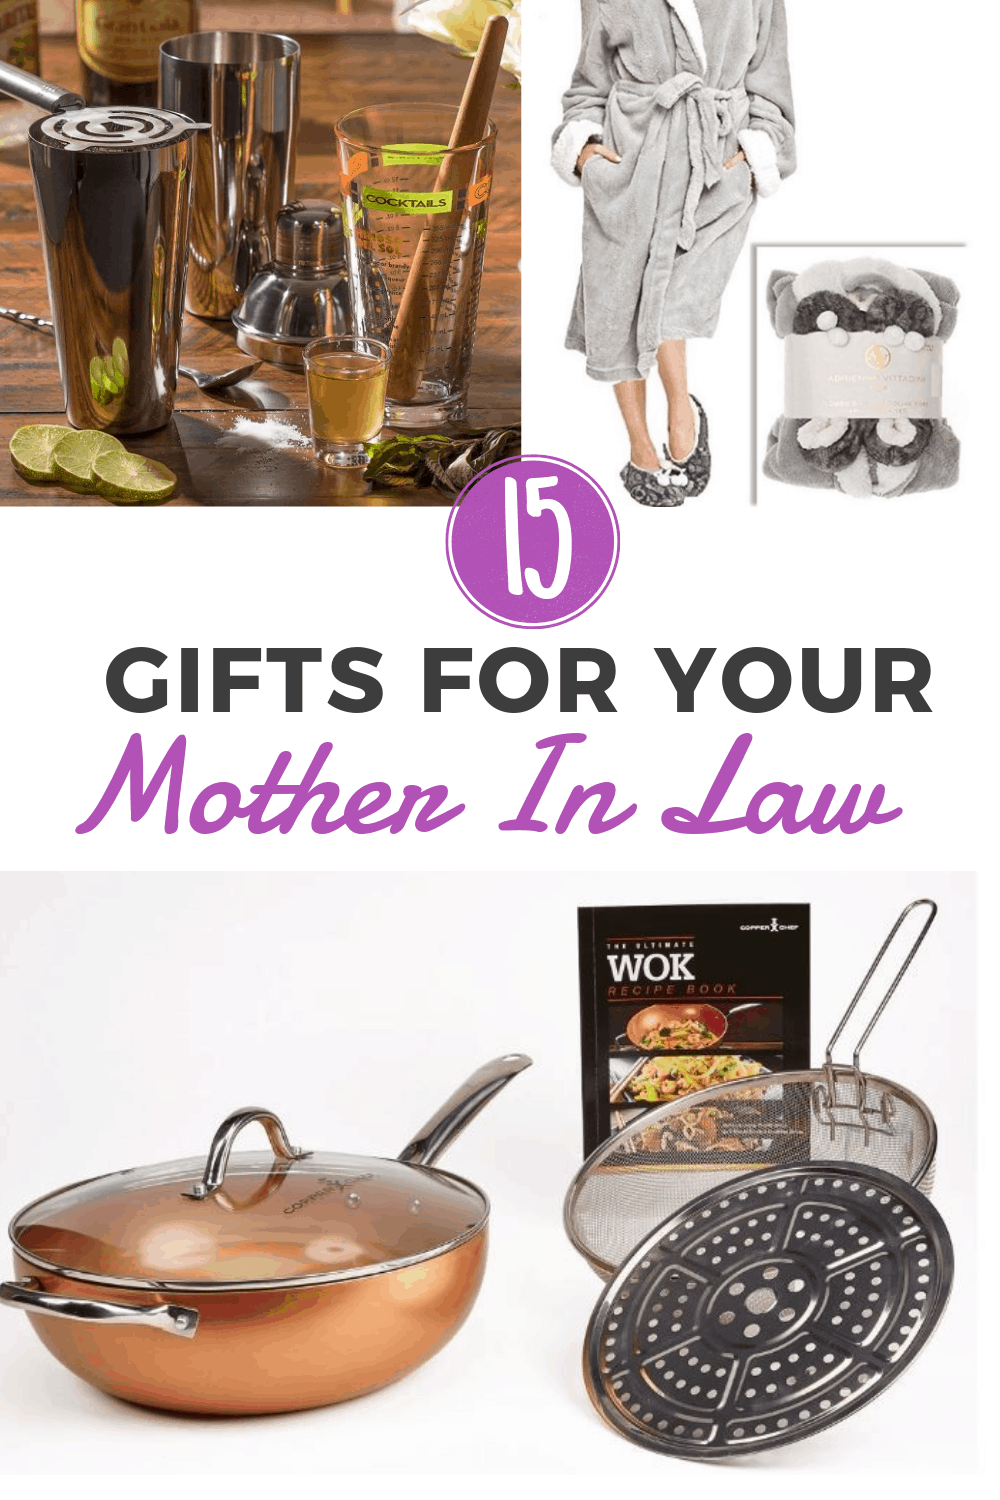 15 Christmas Gift Ideas For Your Mother In Law - Society19